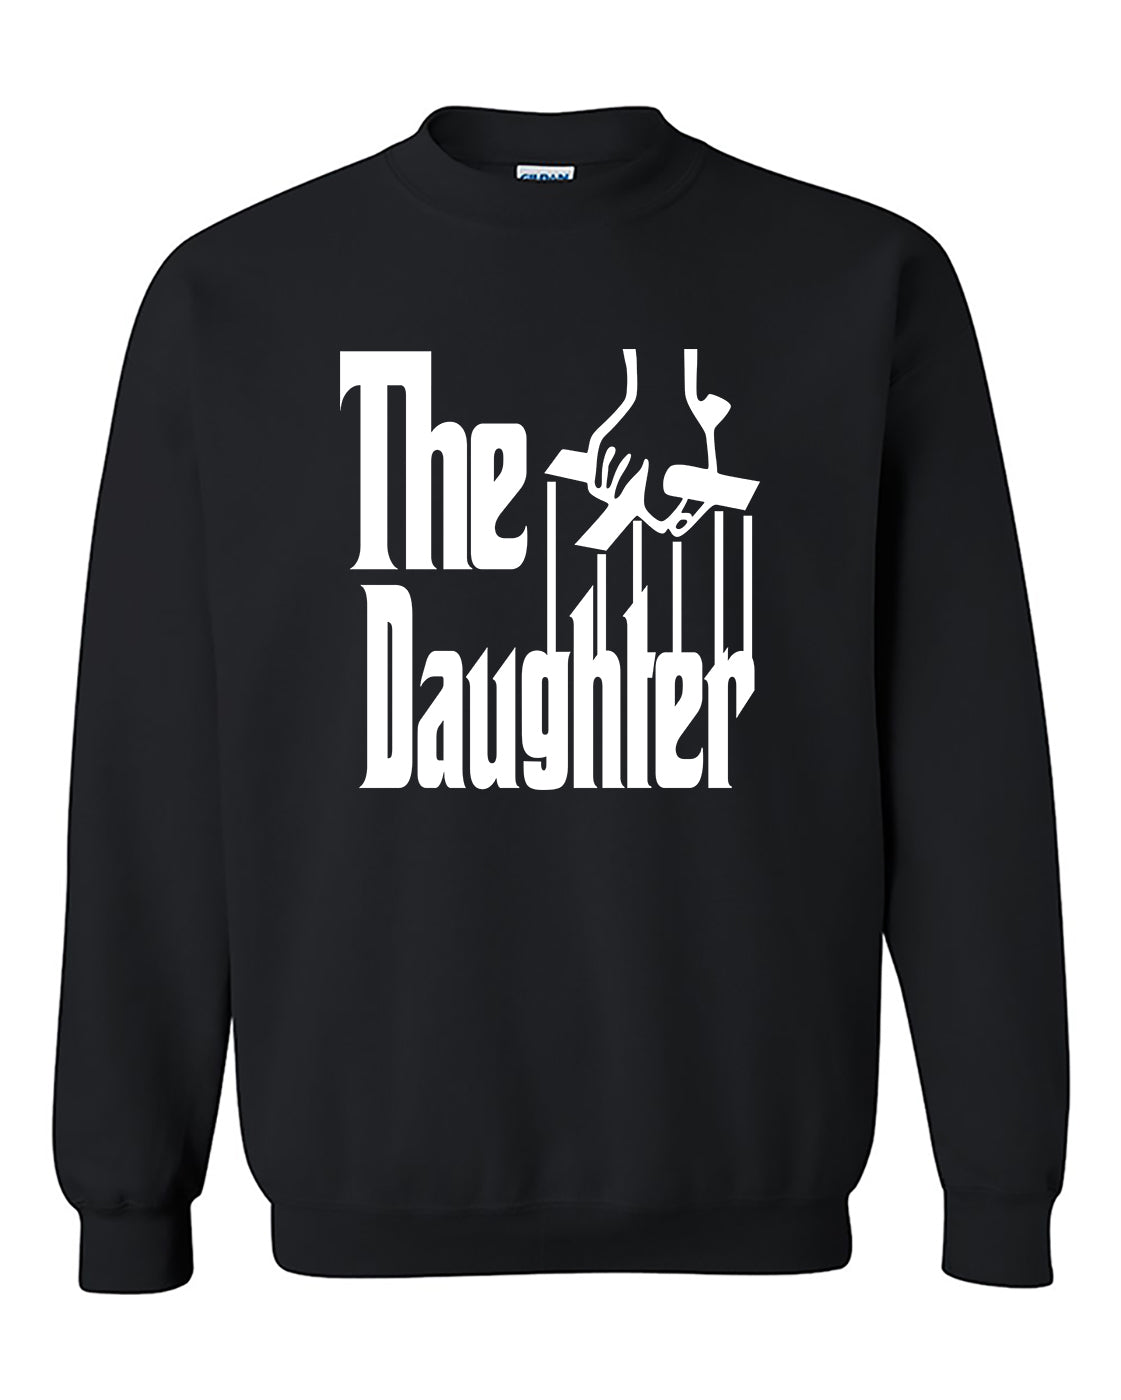 The Daughther The Godfather Style Crewneck Sweater